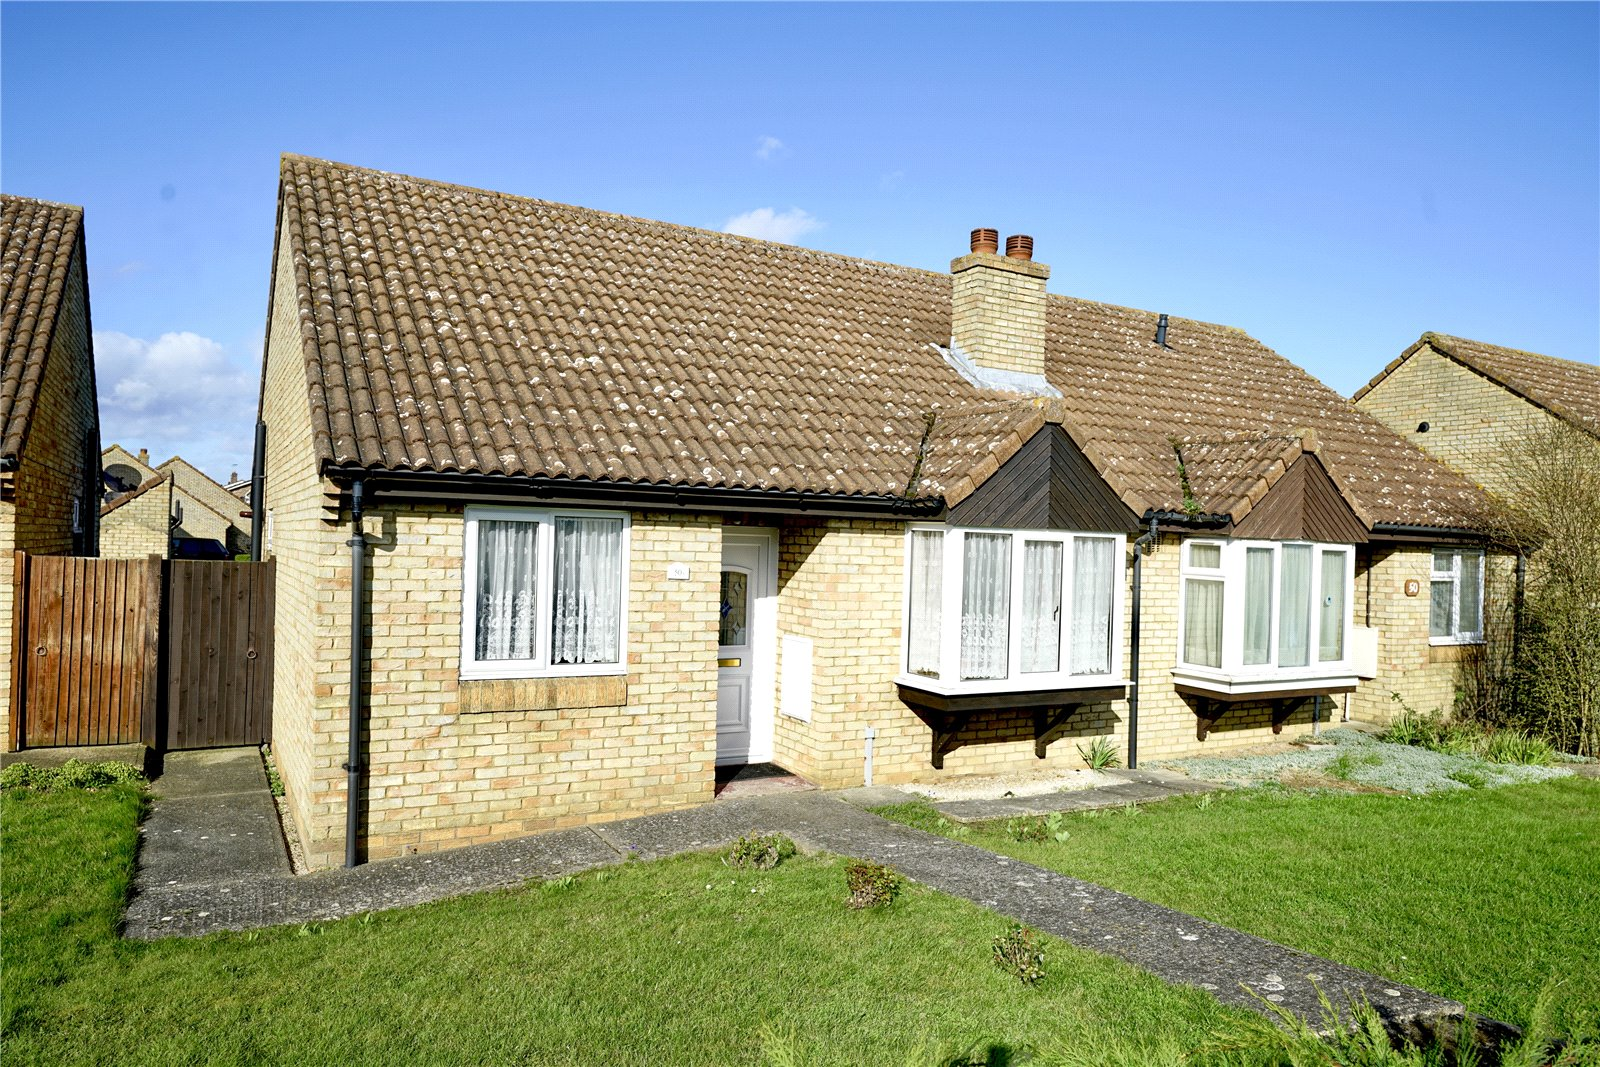 2 bed bungalow for sale in Bushmead Road, Eaton Socon, PE19